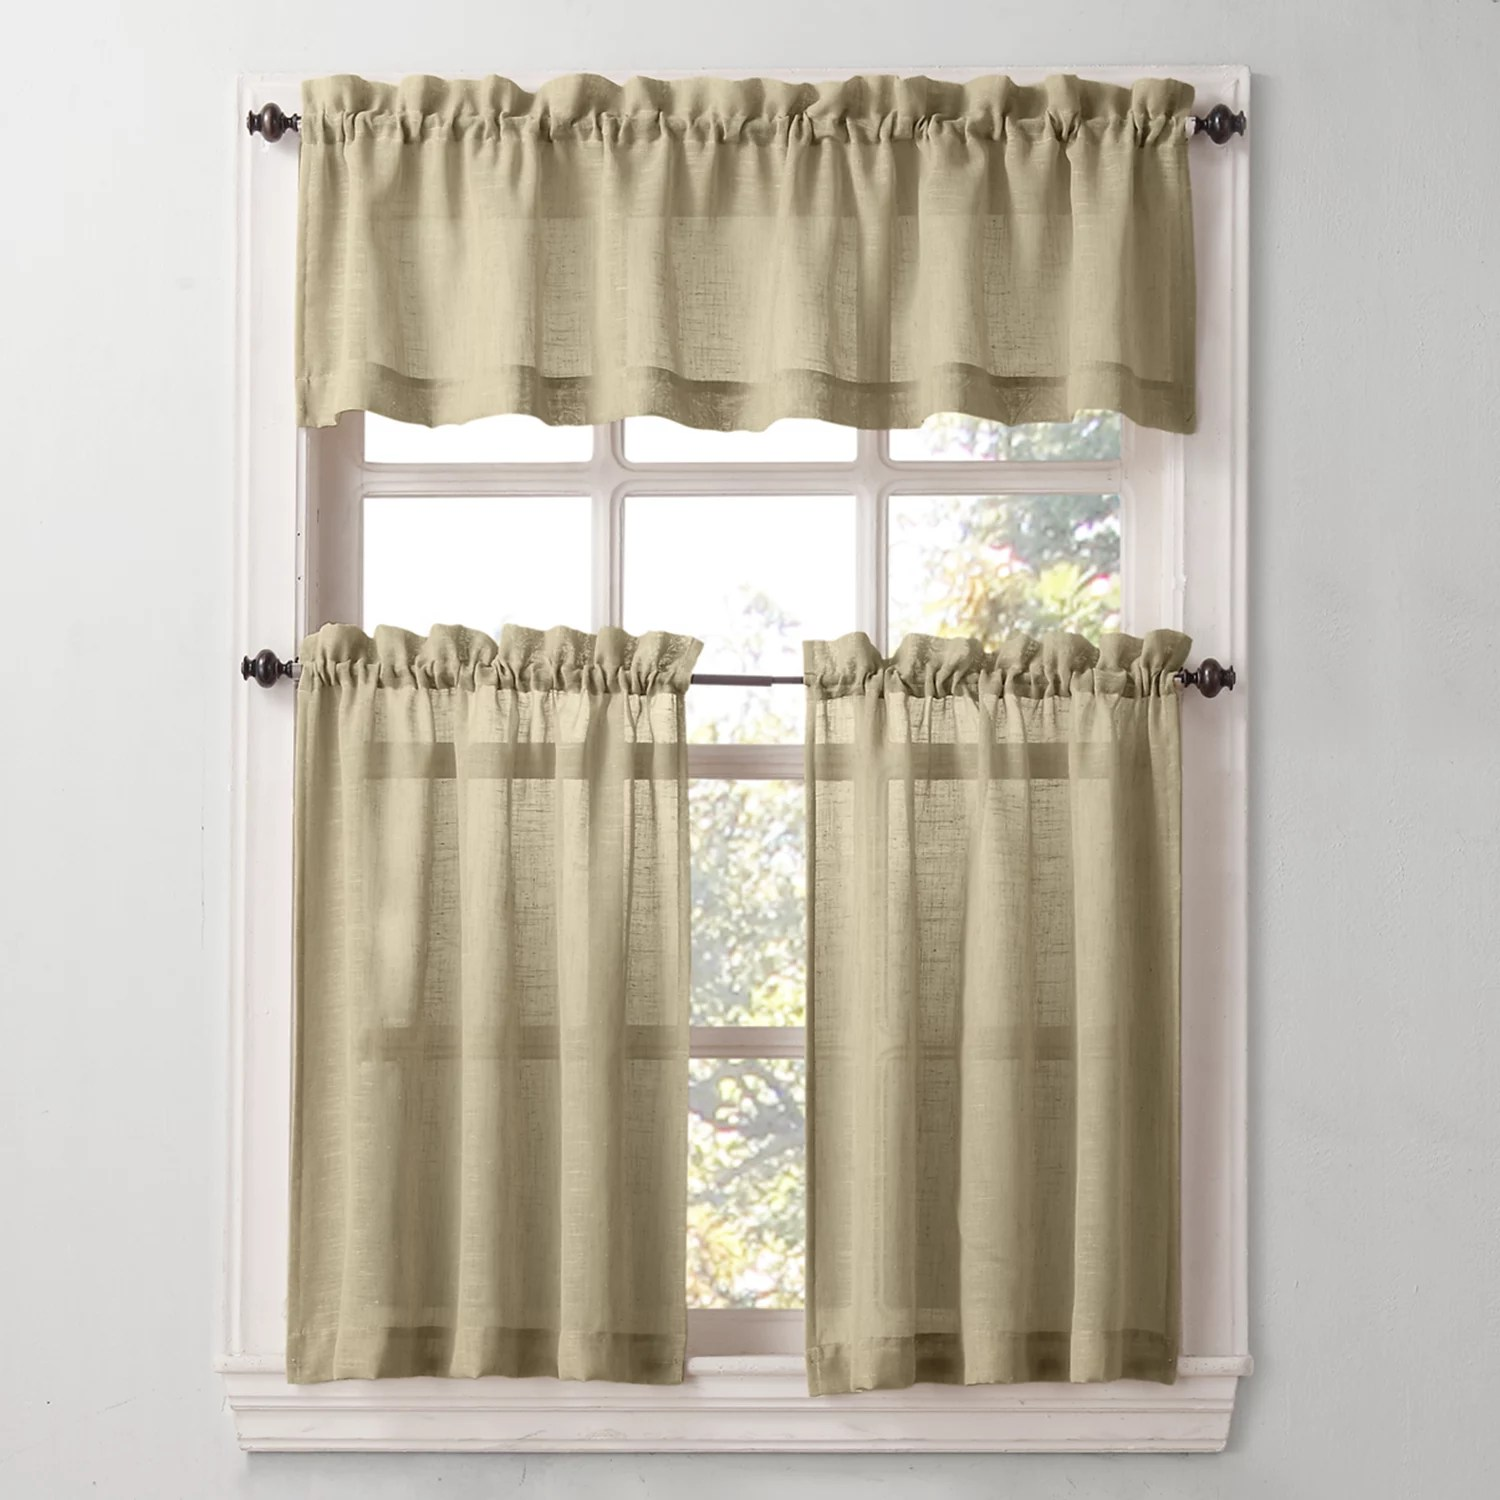 kitchen curtians cool cabinets sonoma goods for life curtains drapes window treatments ayden linen blend tier